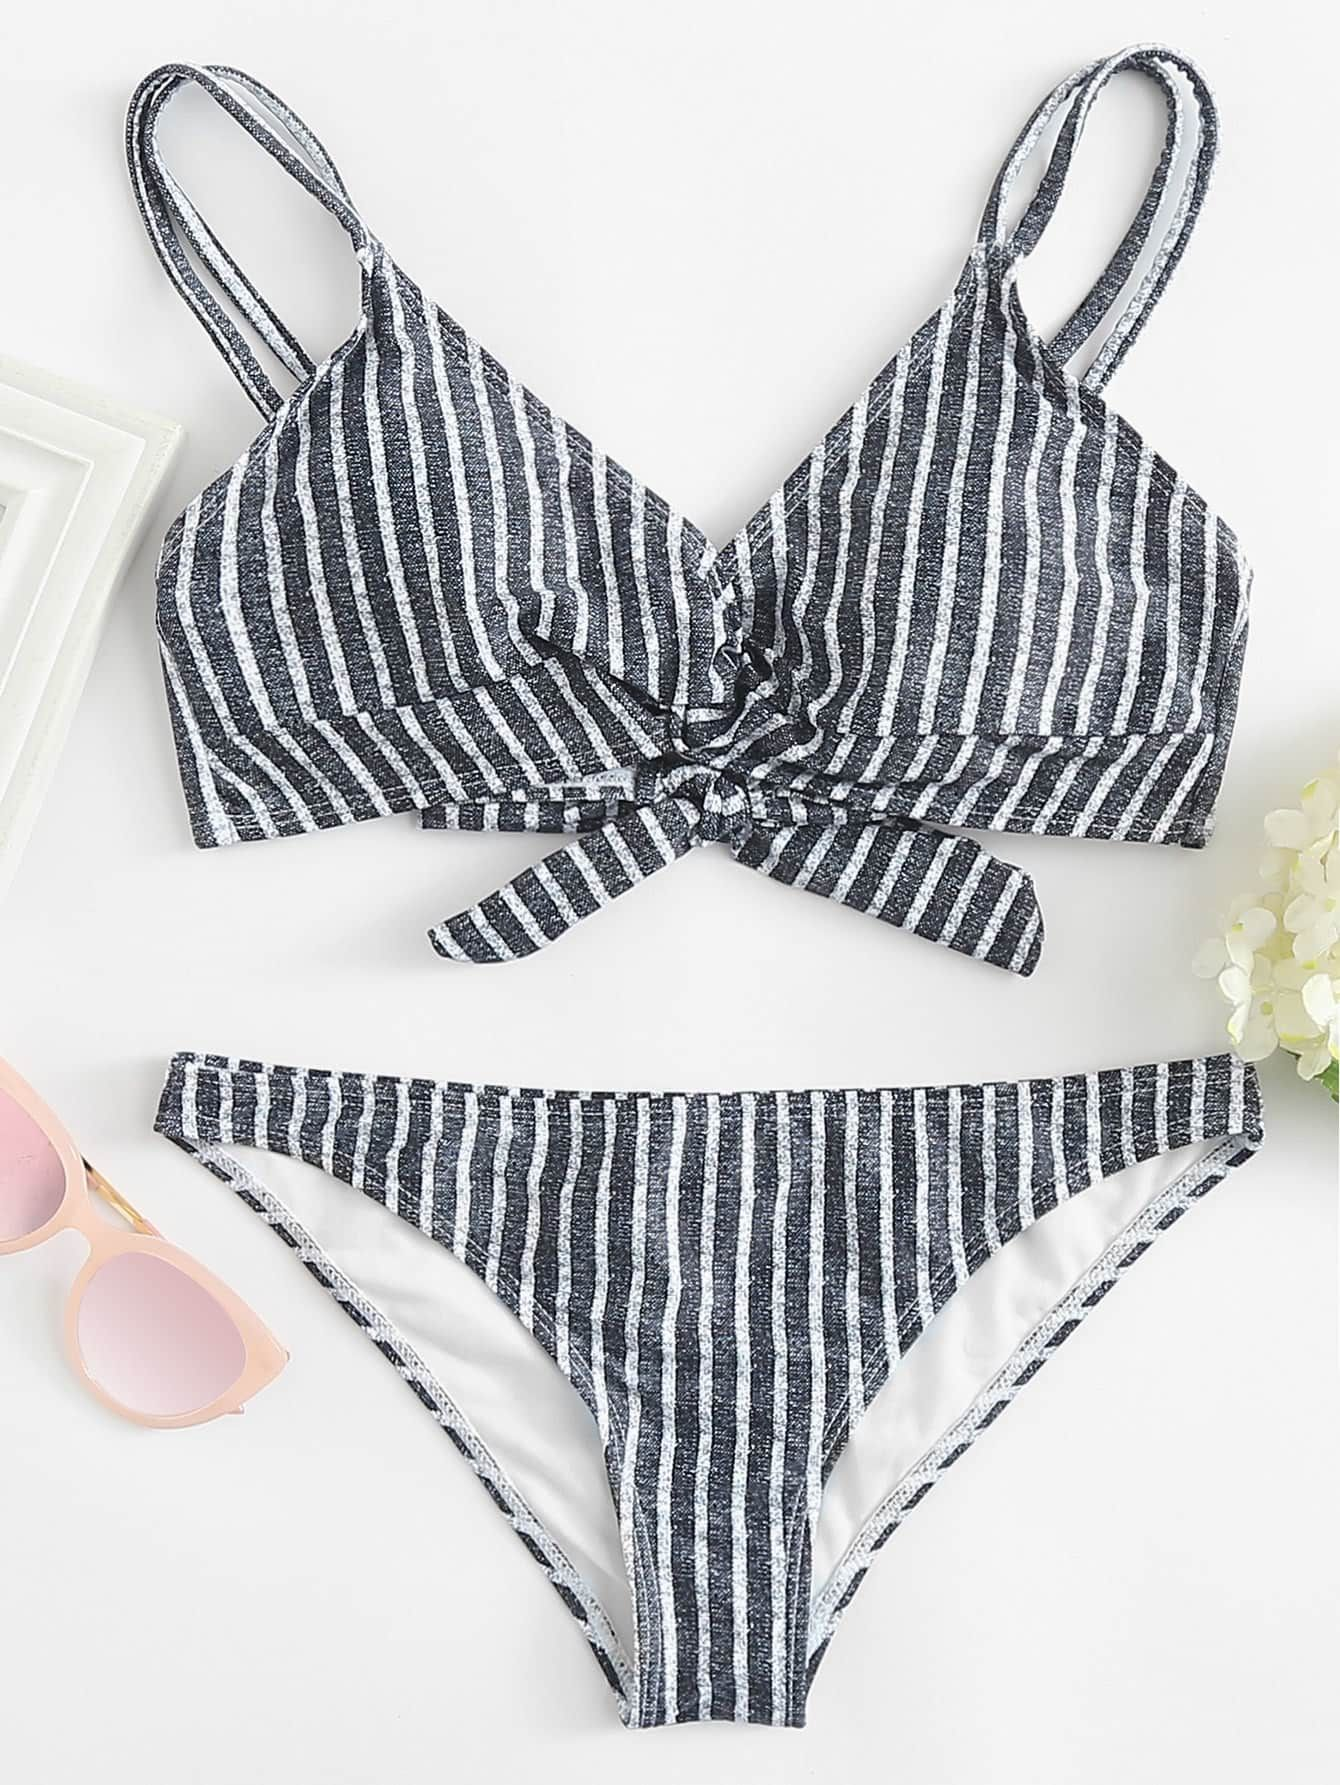 Twist Front Striped Bikini Set Romwe Striped Bikini Sets